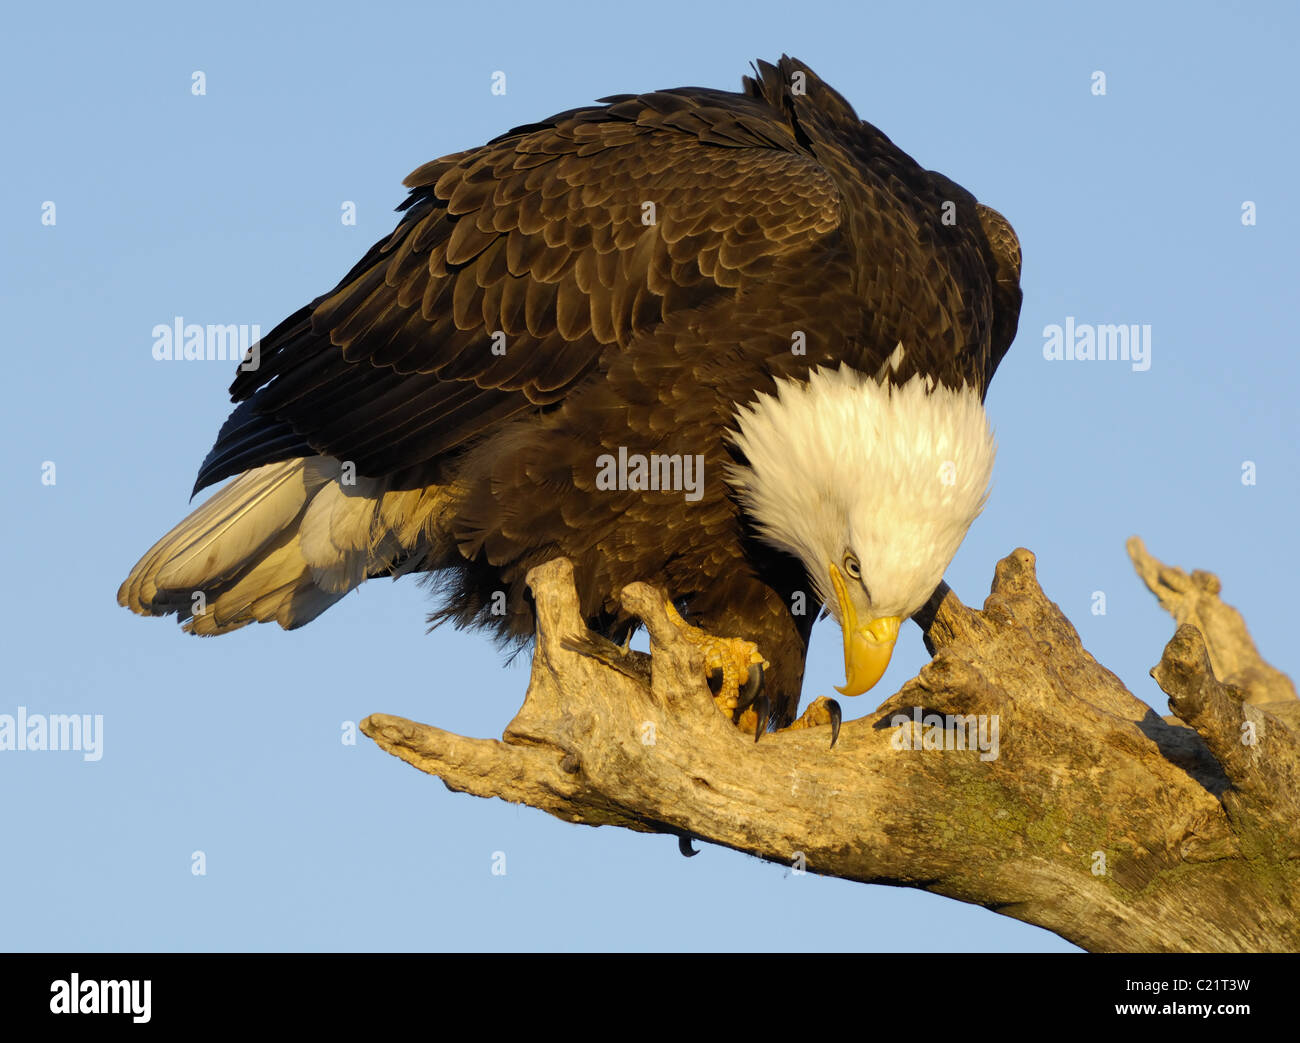 Bald Eagle sitting on tree trunk at the beach of Kachemak Bay near Homer at the Homer Spit in Alaska eating on fish Stock Photo